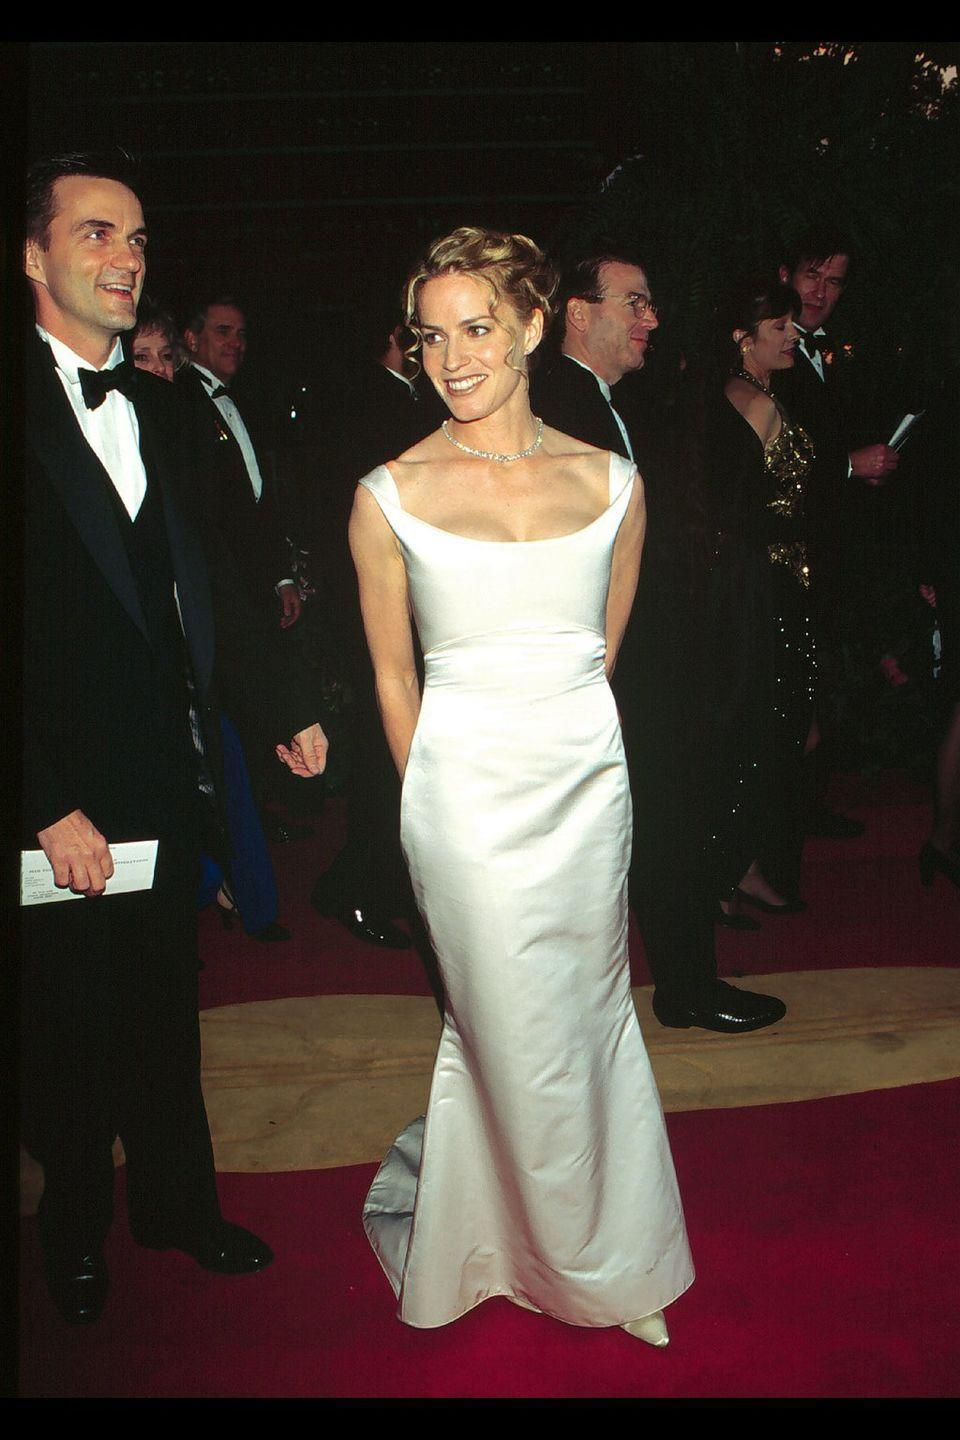 <p>This Best Actress nominee dazzled in a sultry white column and accessorized with a diamond necklace on the red carpet. </p>